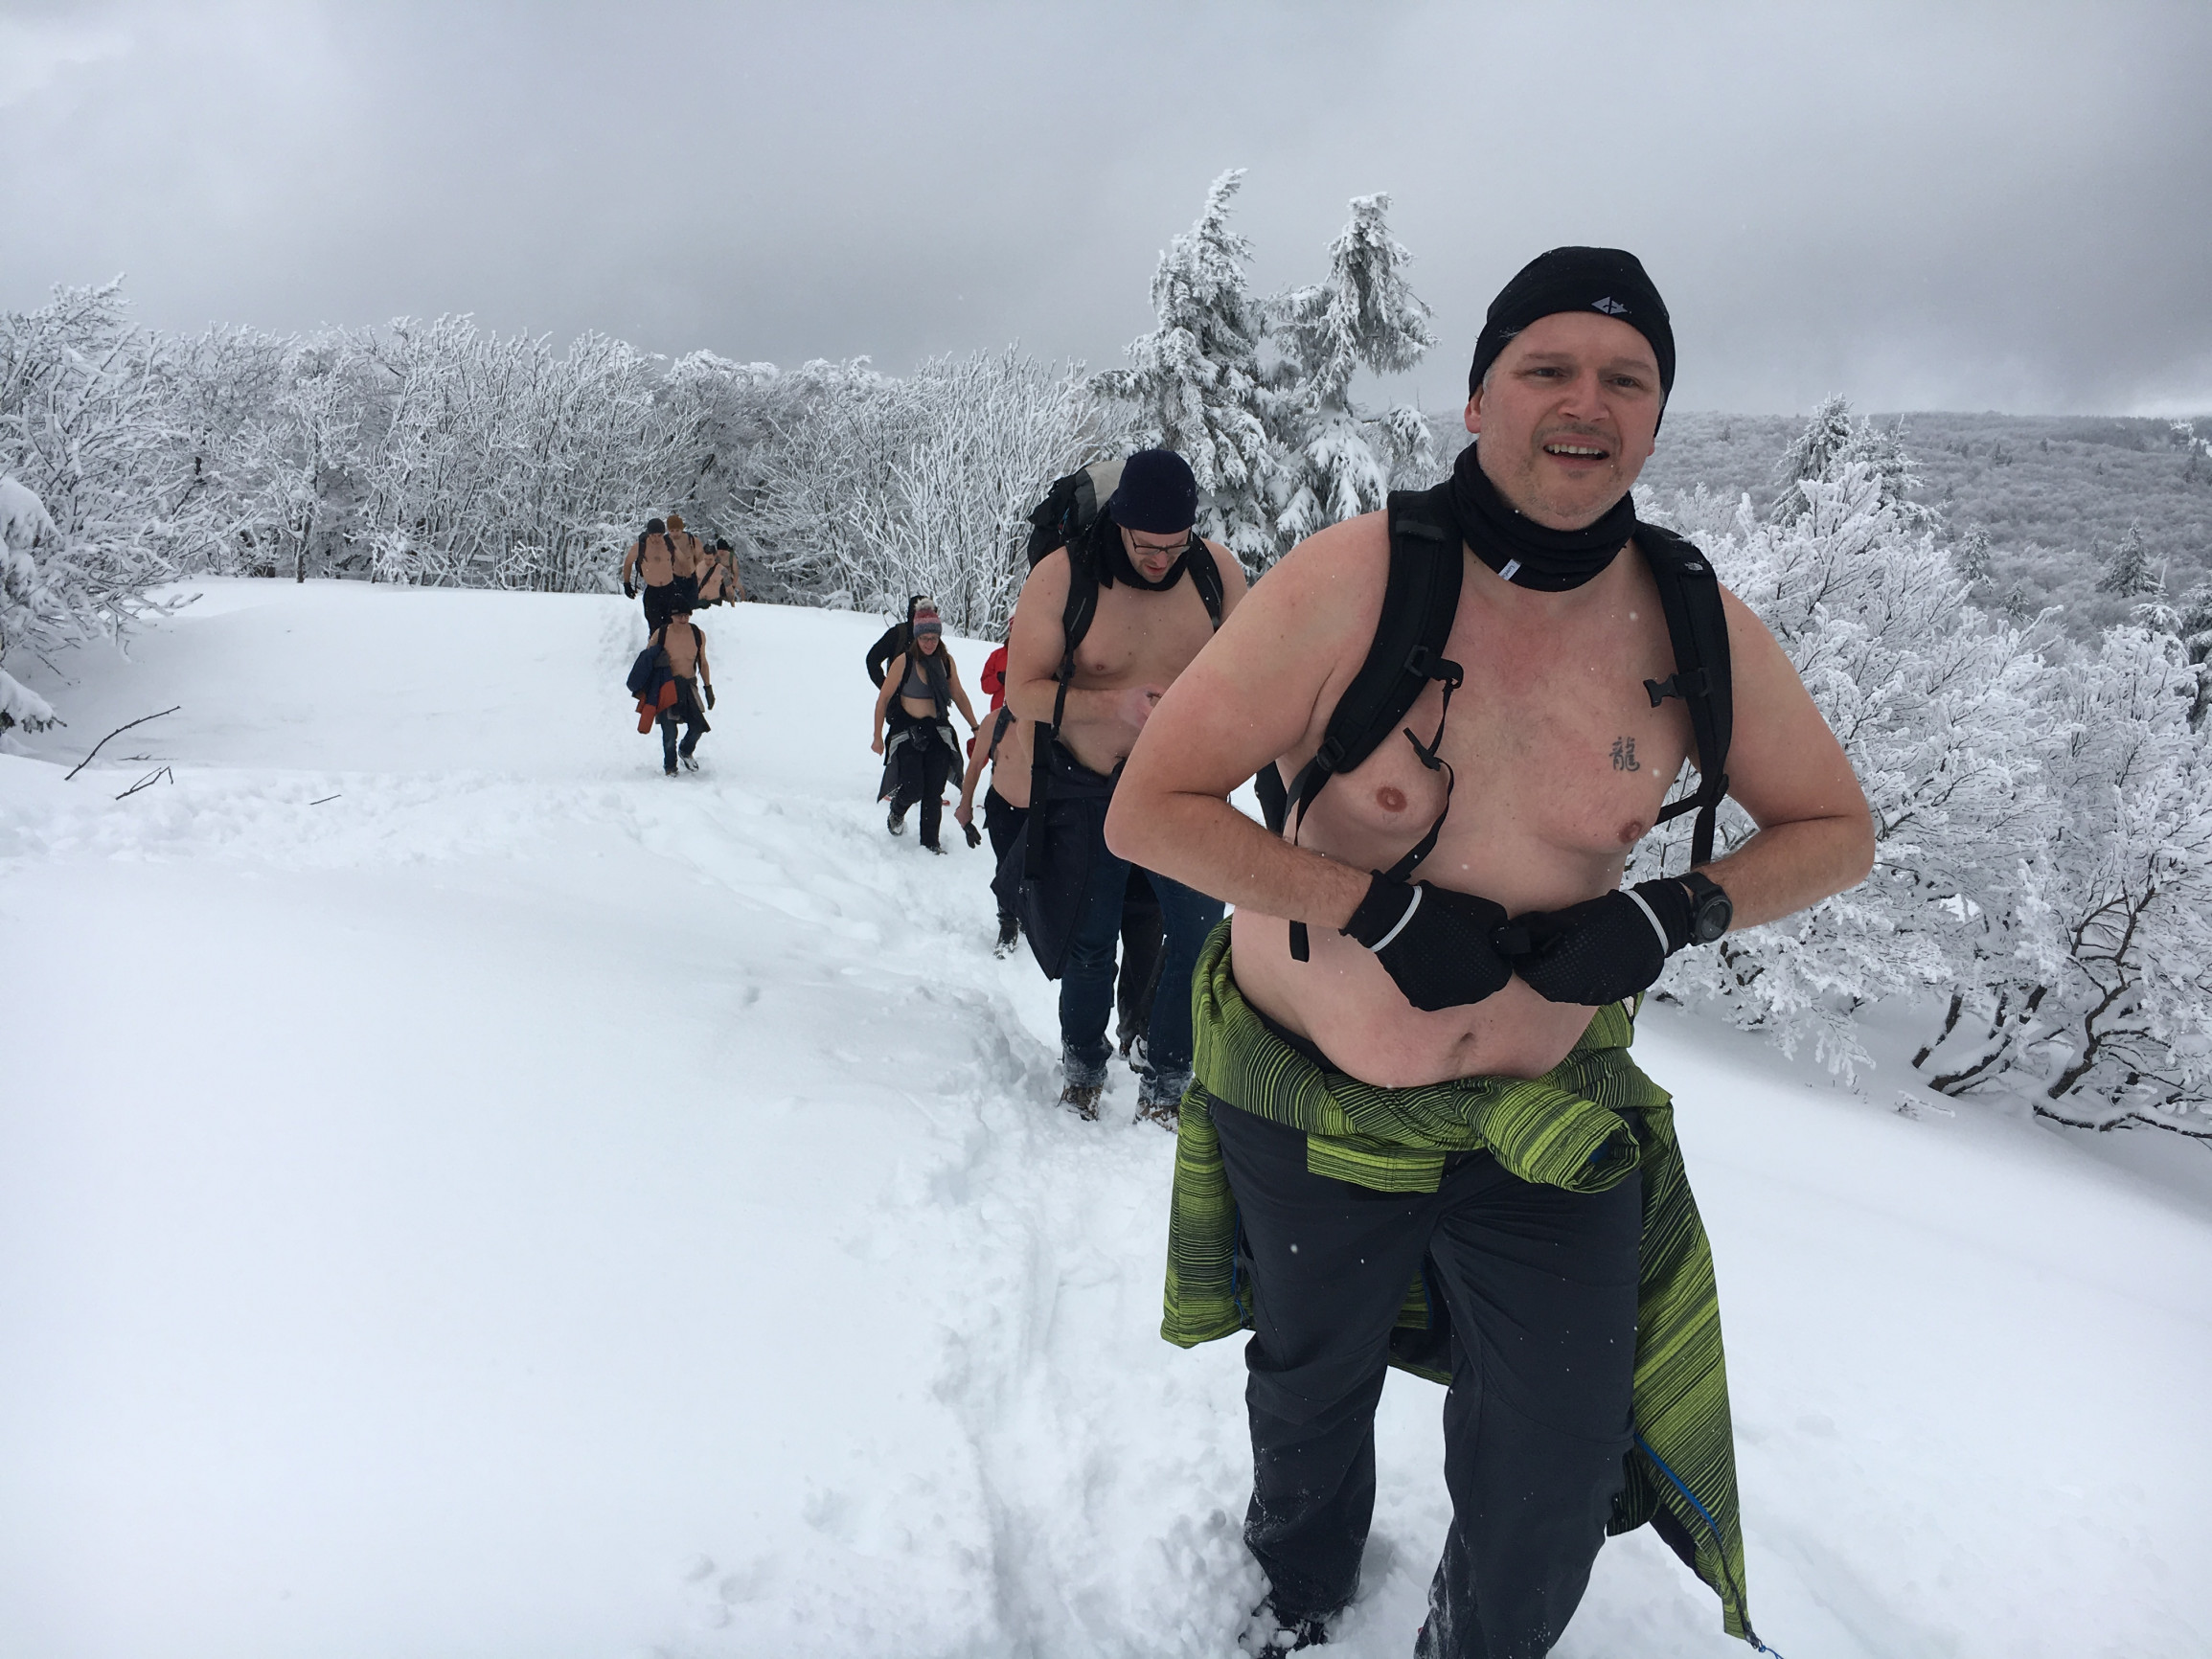 Image 9 of 12 - Experience Endurance to get an impression of WHM Vosges Xperience by Jerome Wehrens at Ban-sur-Meurthe-Clefcy